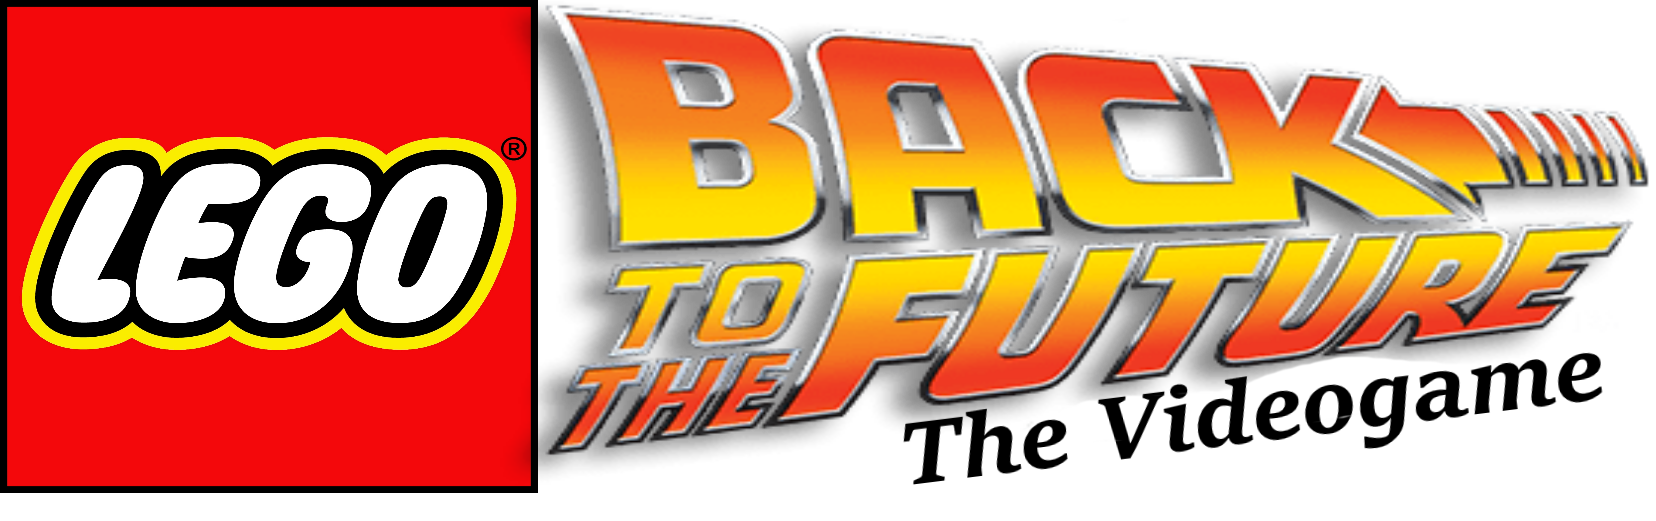 Back to the future logo png. Custom lego videogame brickipedia